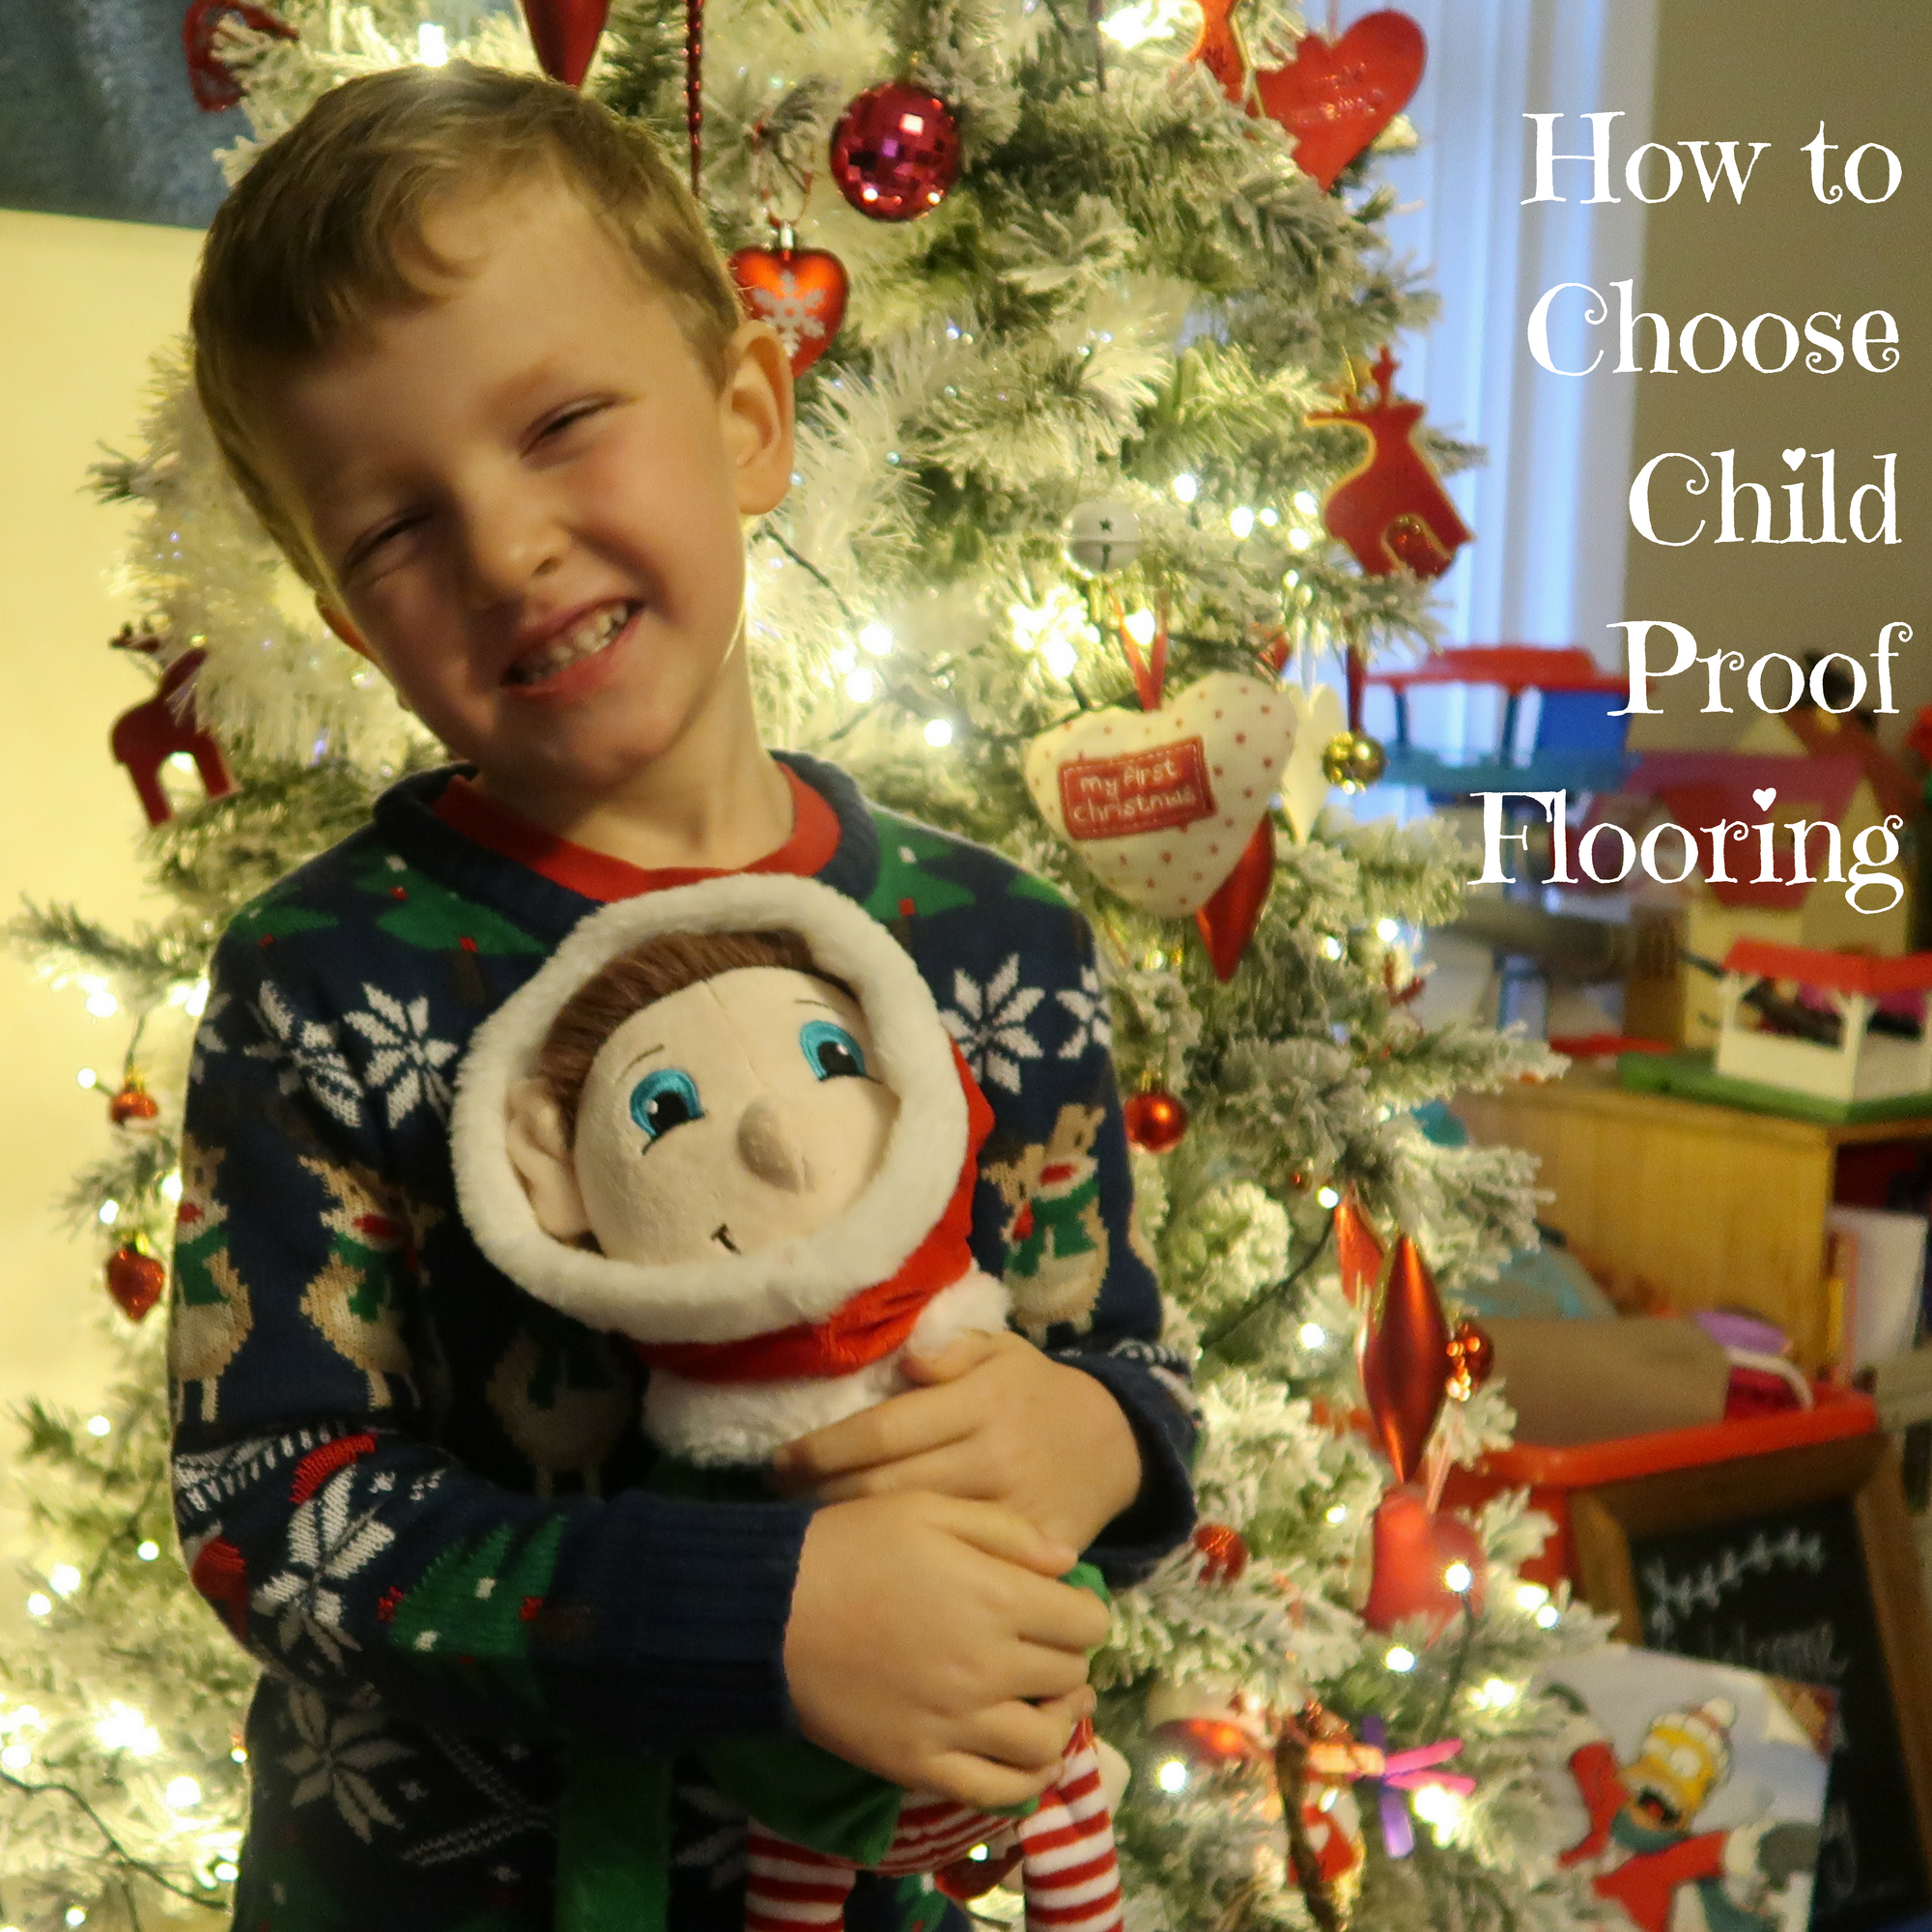 How to Choose Child Proof Flooring